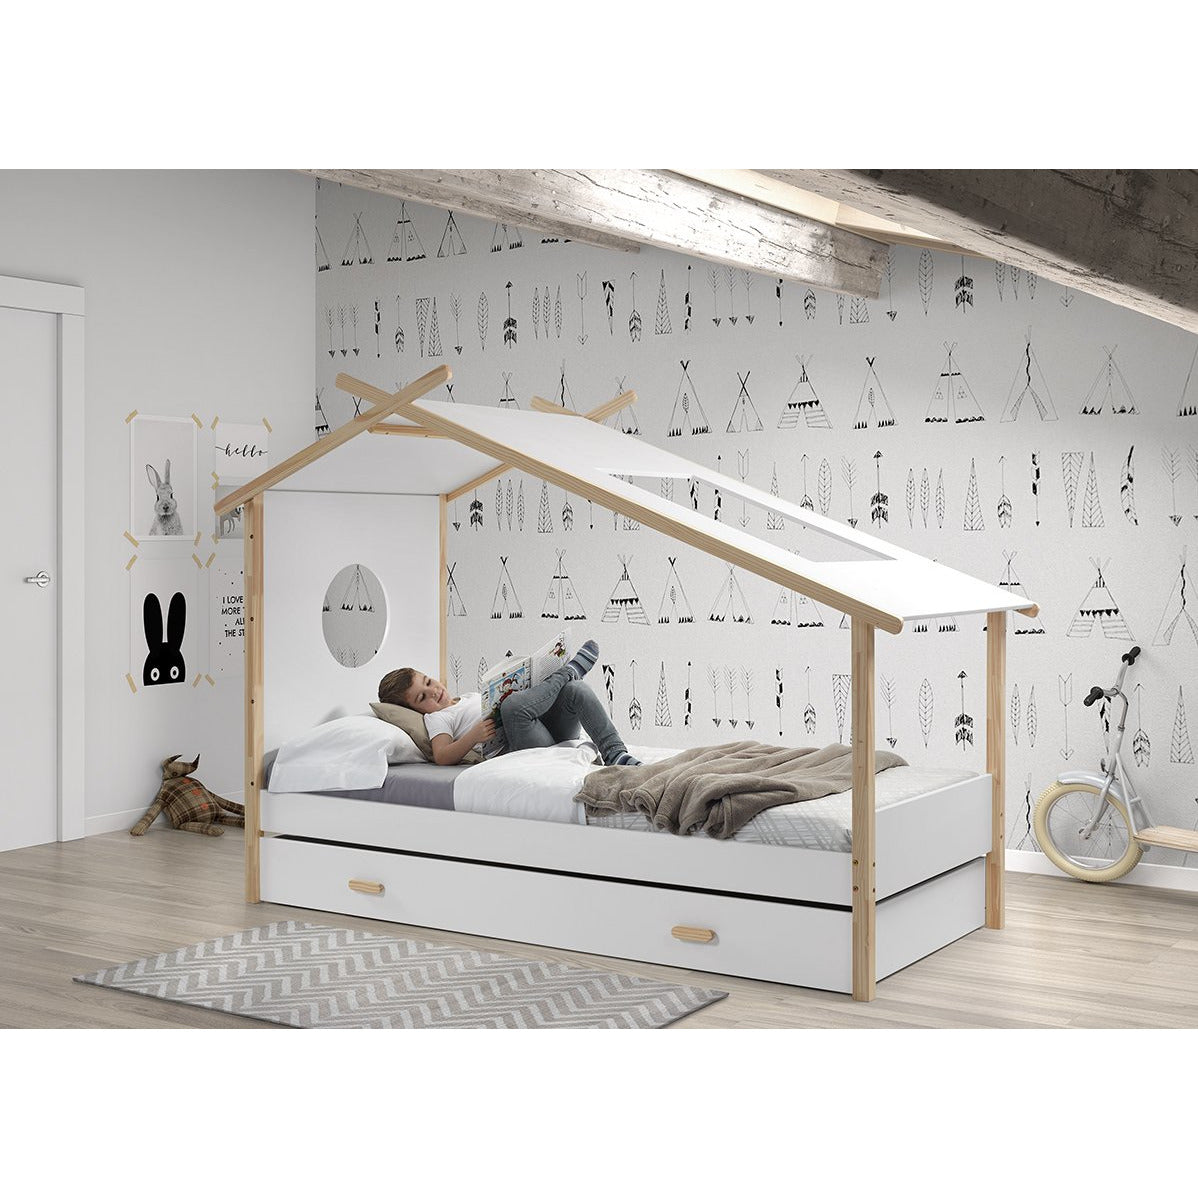 Trundle Drawer for Cocoon Kids House Bed